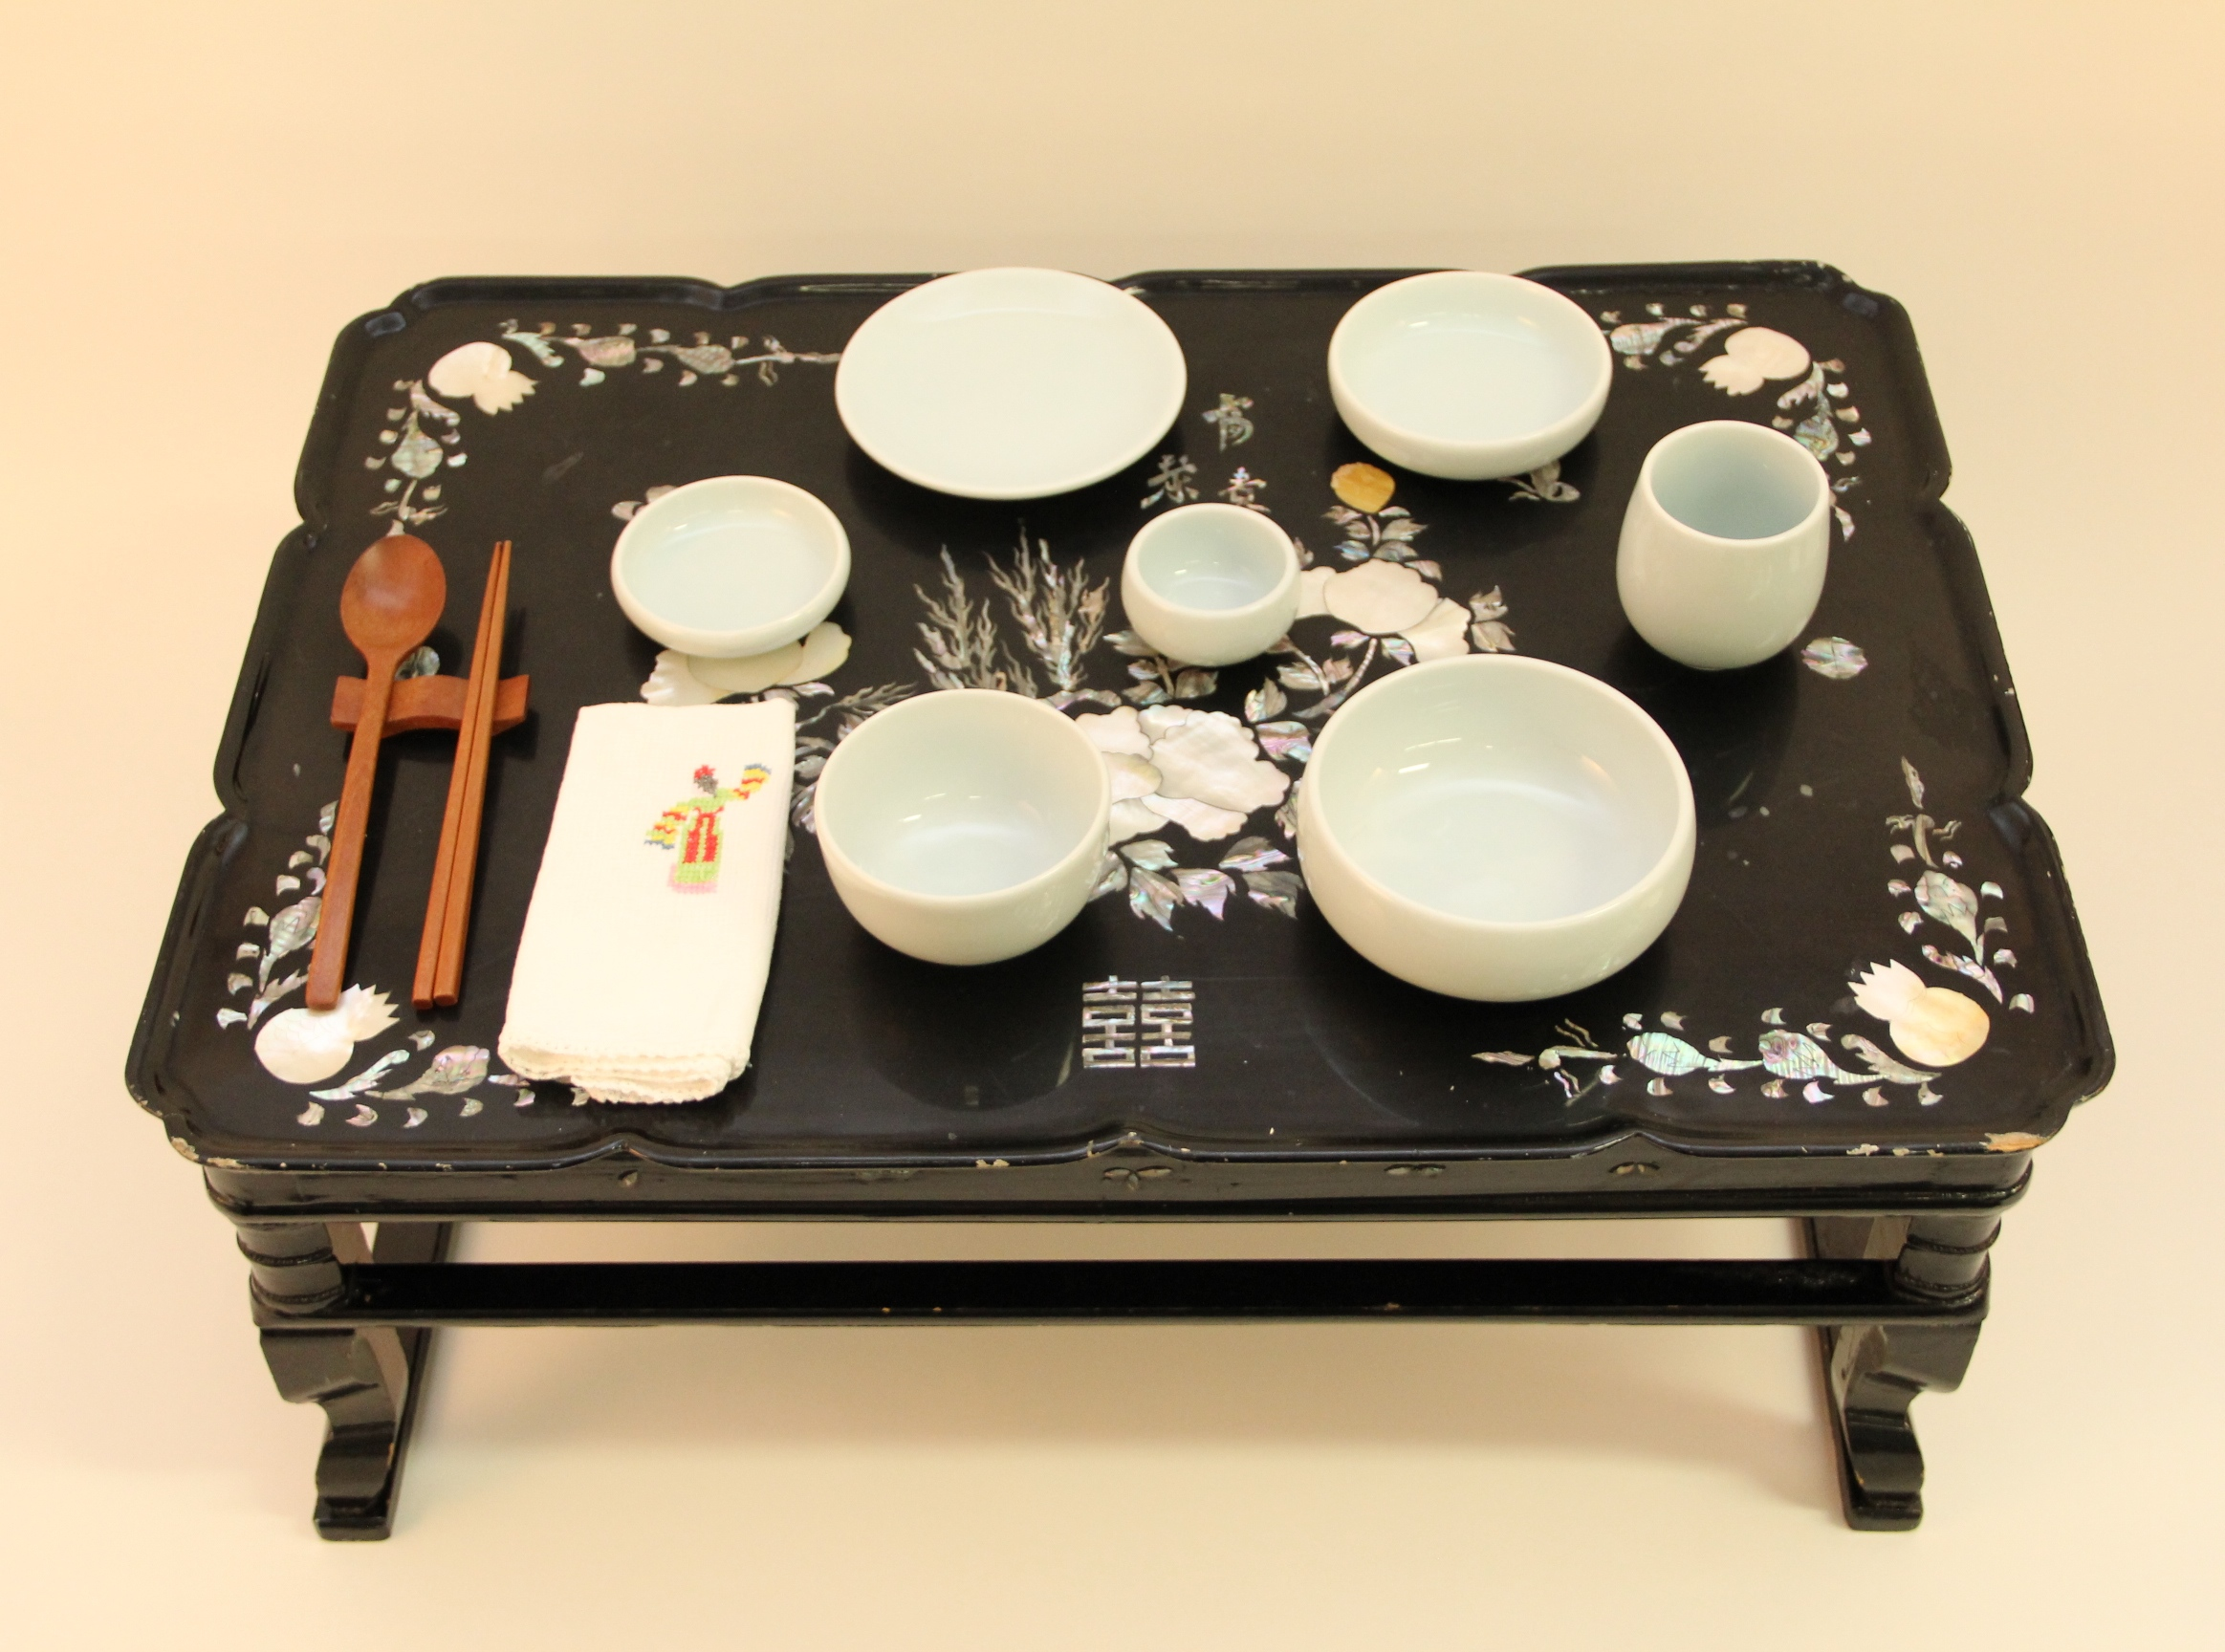 Traditional Korean tea tray with porcelain dishes